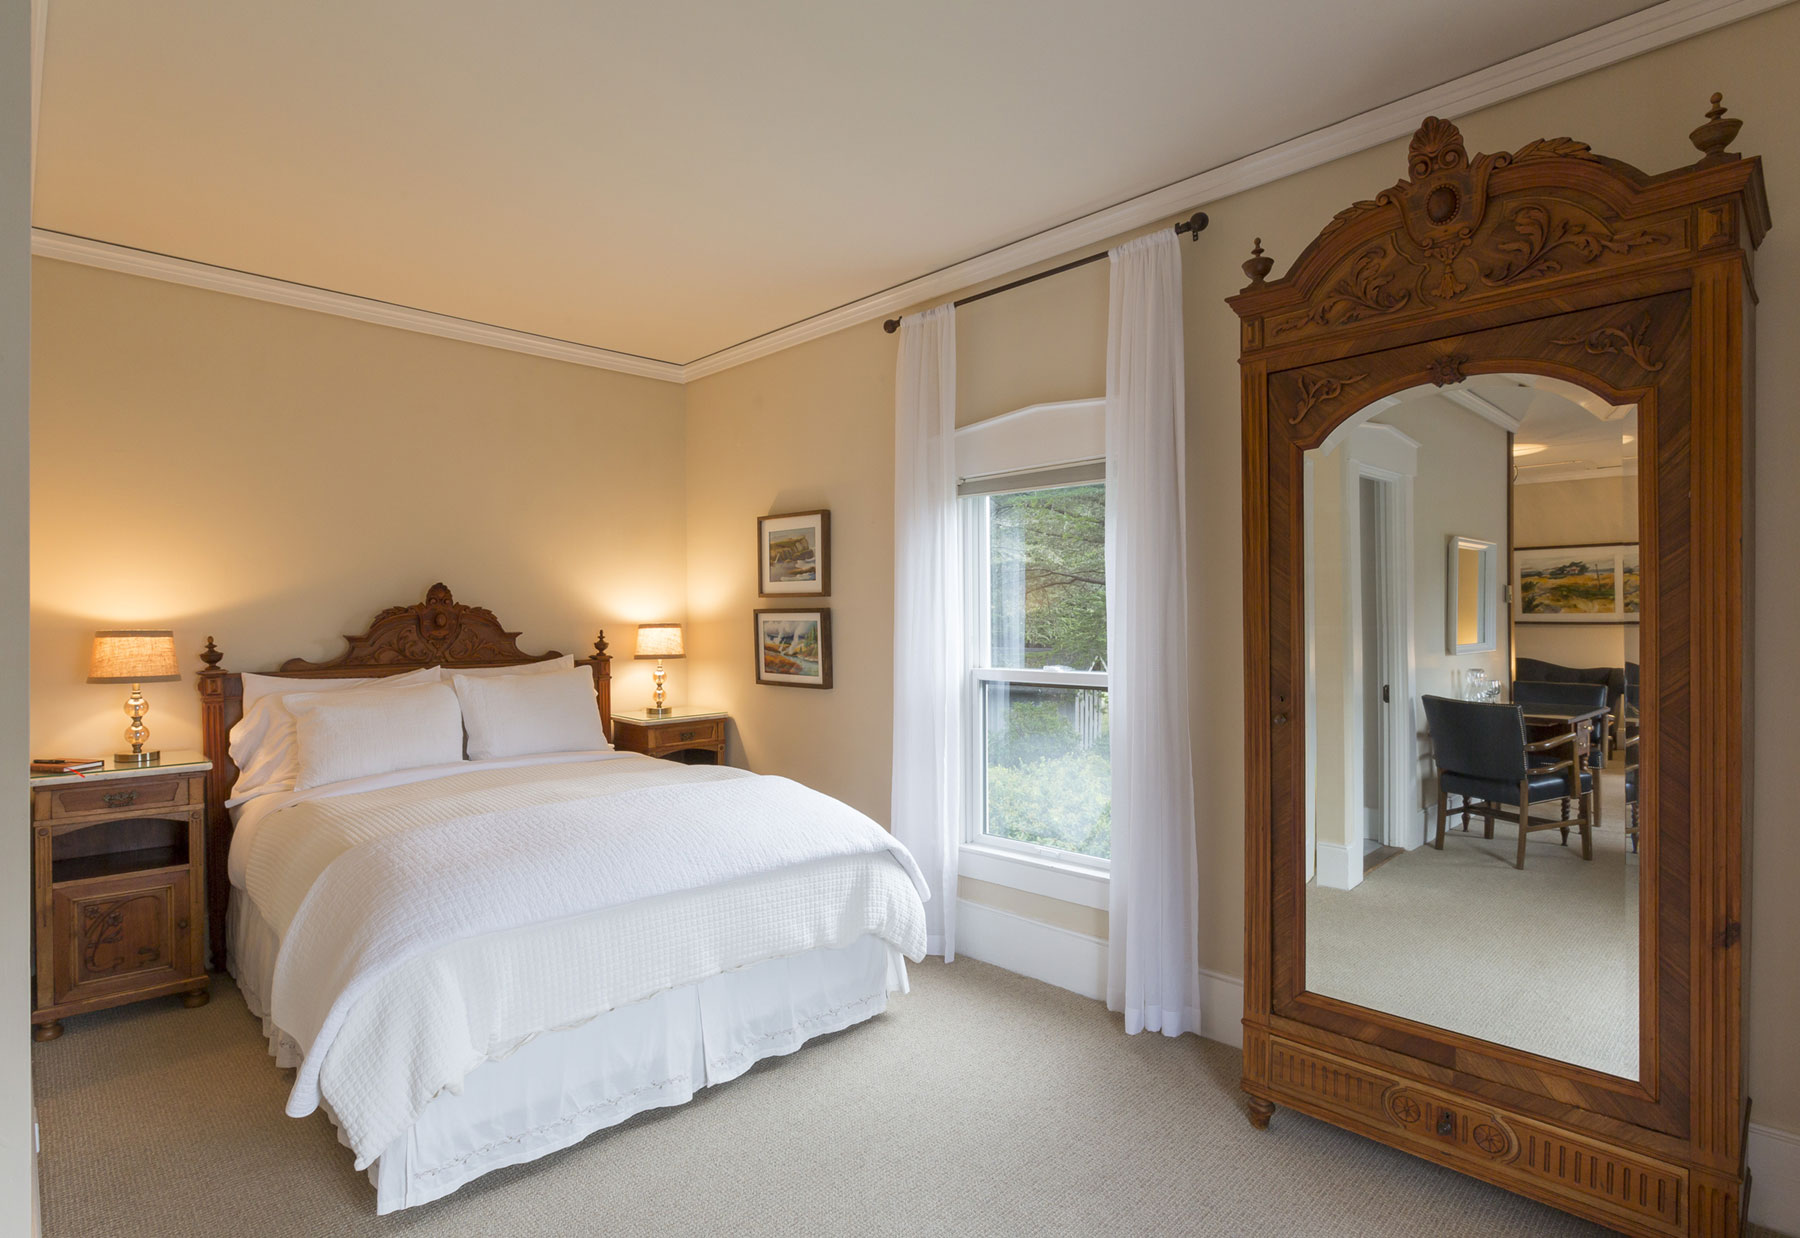 Bayview Suite with queen featherbed, antique furnishings, and view windows.